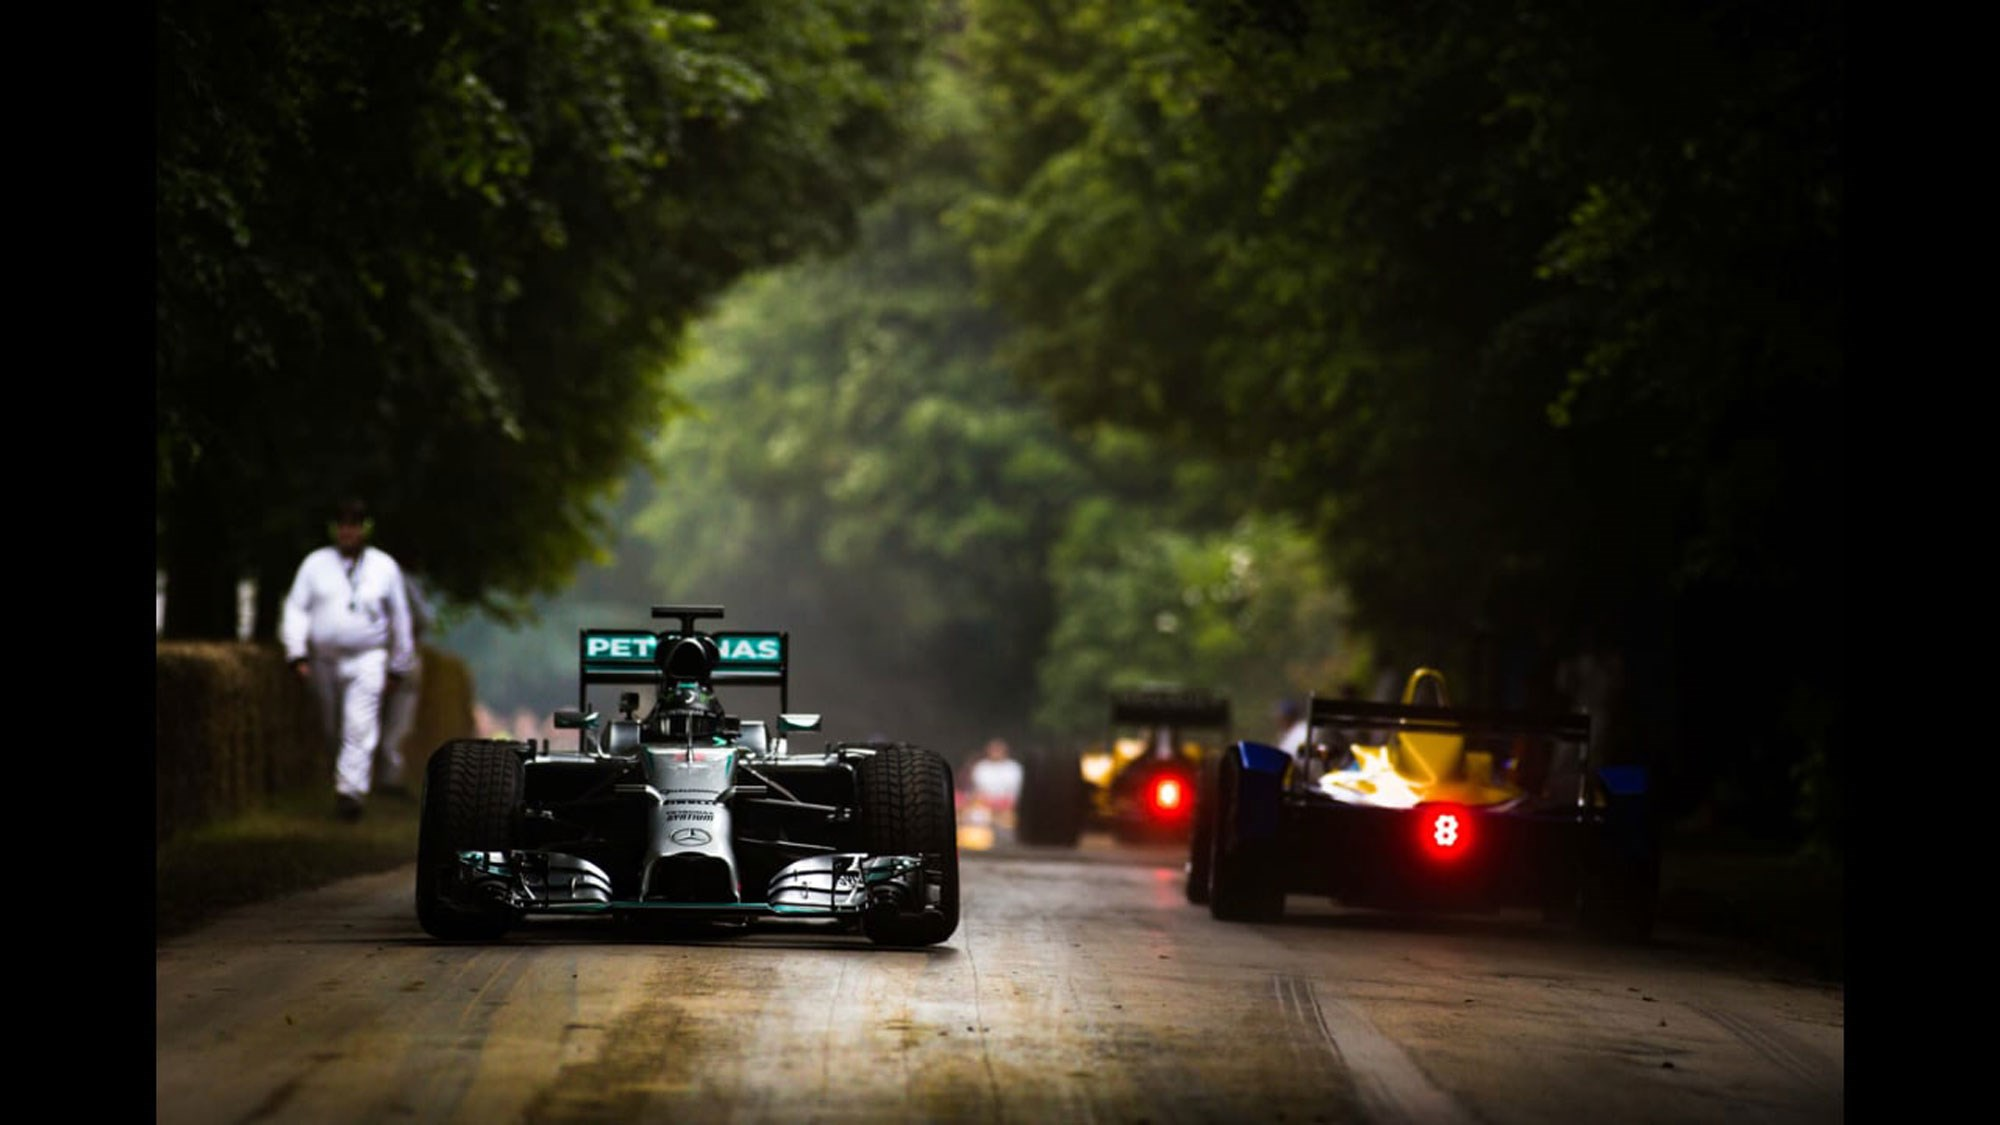 Dates For Confirmed For Goodwood Festival Of Speed And Revival 2019